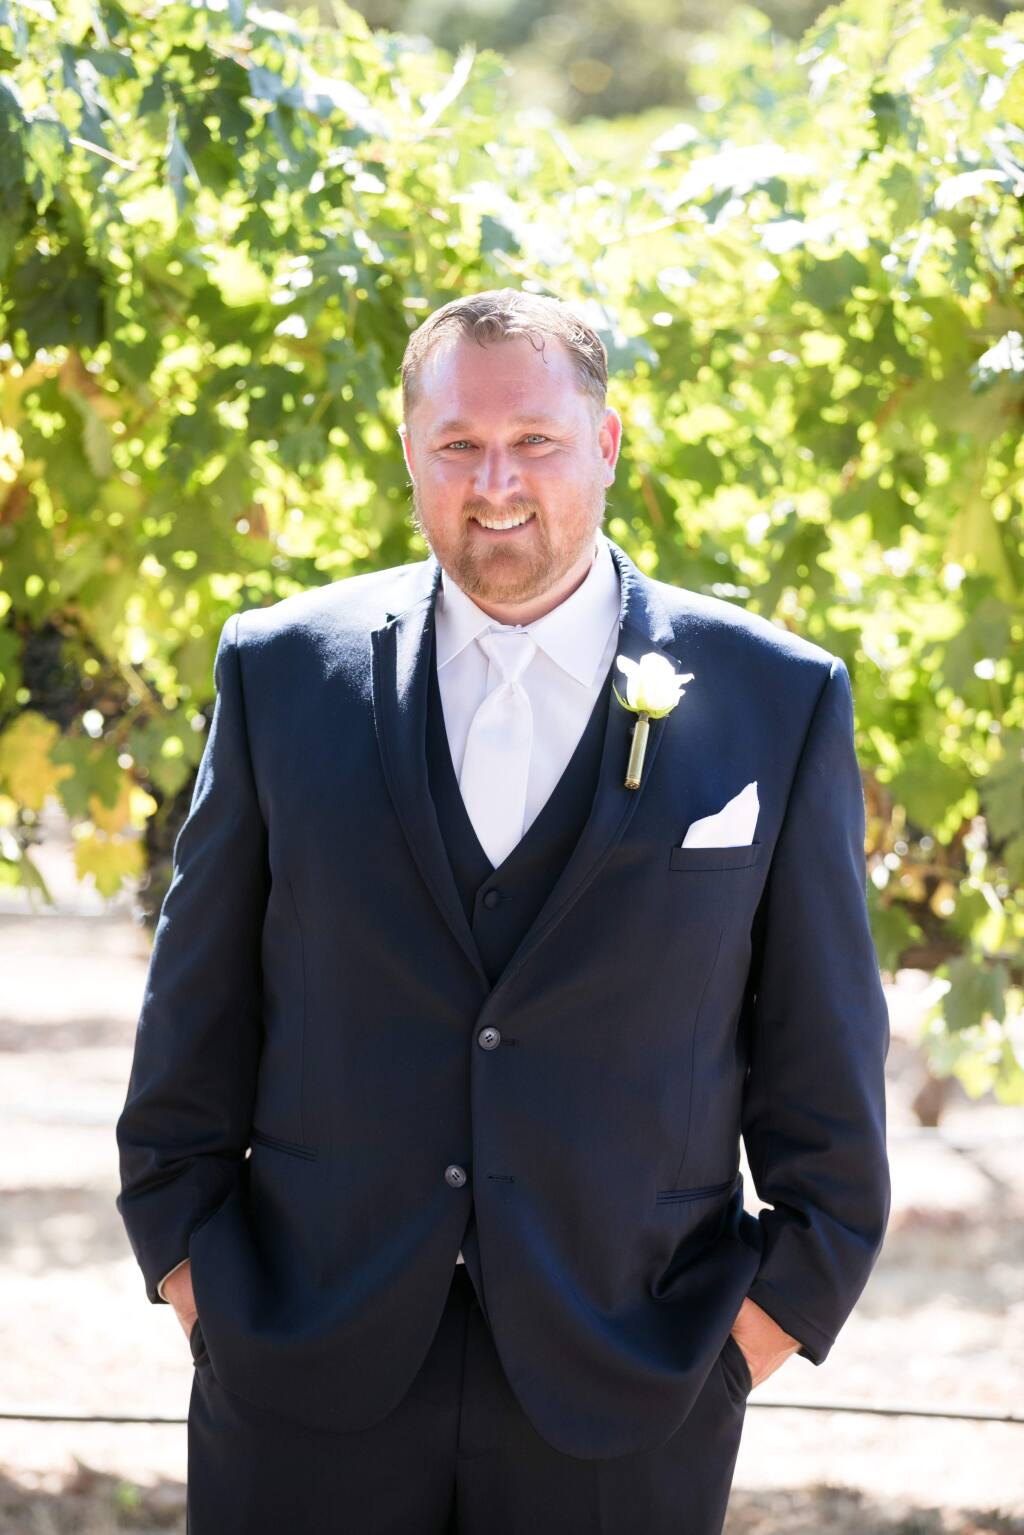 John Serres, 35, owner, Serres Corporation in Sonoma, one of North Bay Business Journal's Forty Under 40 notable young professionals for 2019 (PROVIDED PHOTO)